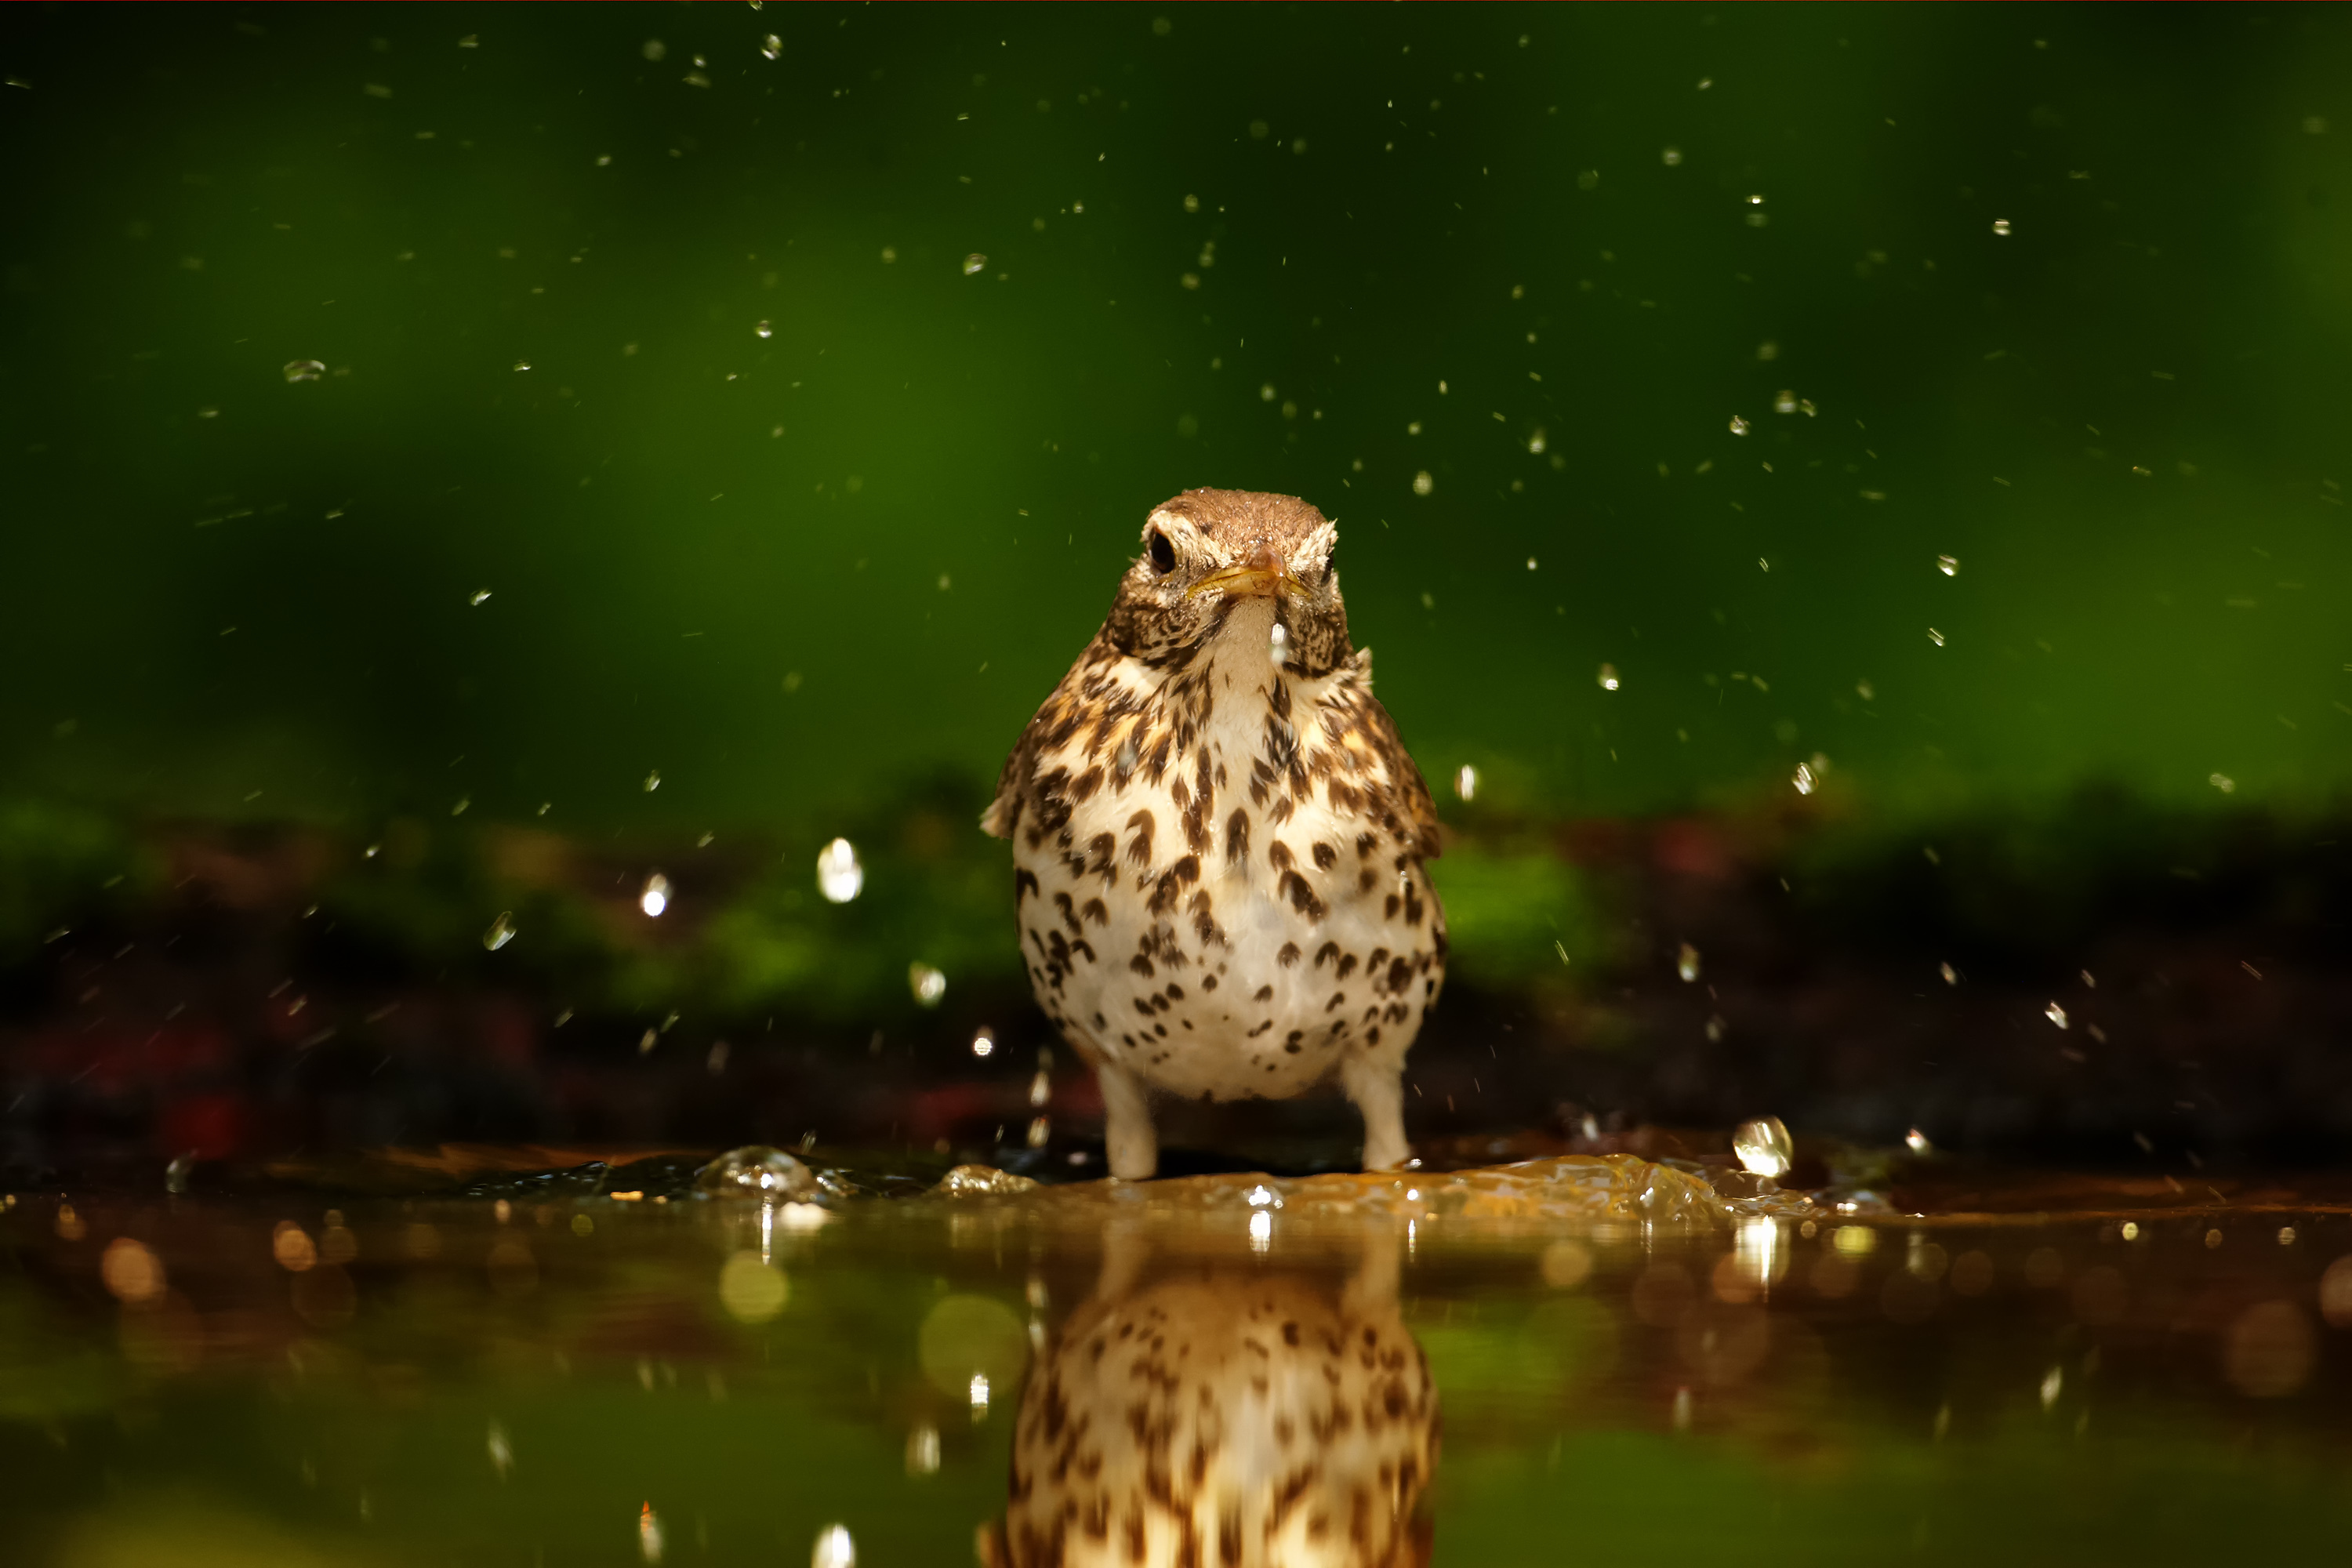 Song birds, especially the smallest of them, are vulnerable to lethal dehydration when heat robs them of water resources as a result of climate change.